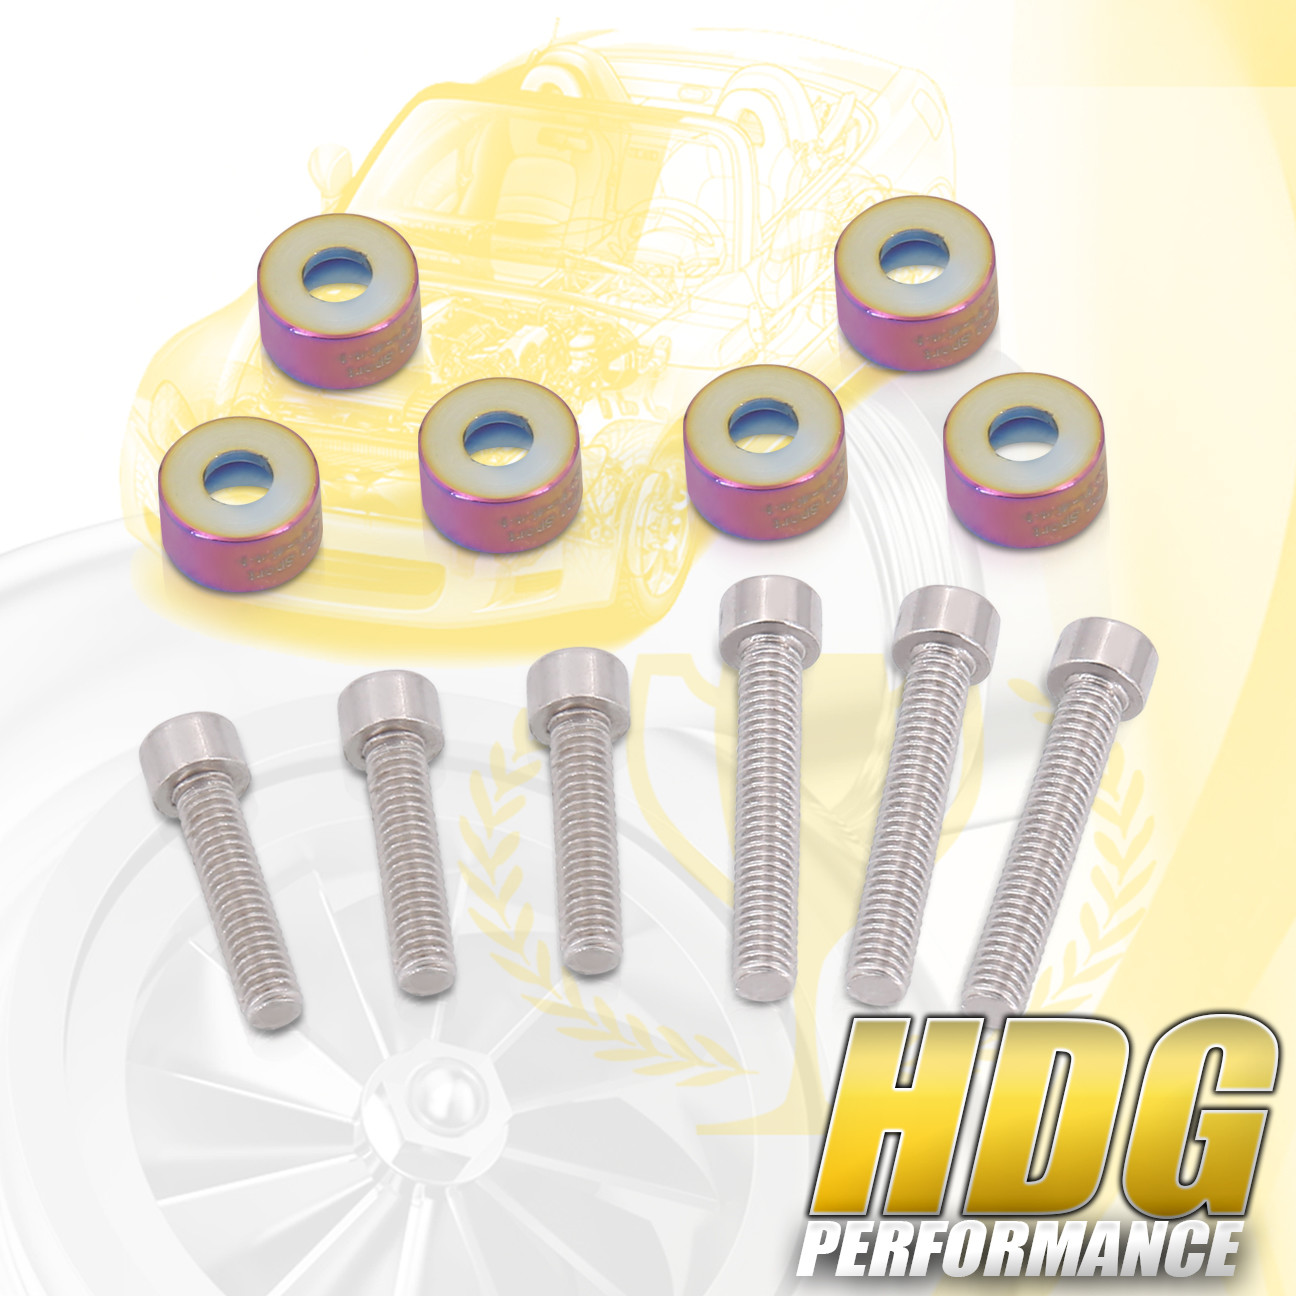 B-SERIES D-SERIES F-SERIES H-SERIES M6 VTEC ENGINE SOLENOID BOLT CUP WASHER NEO